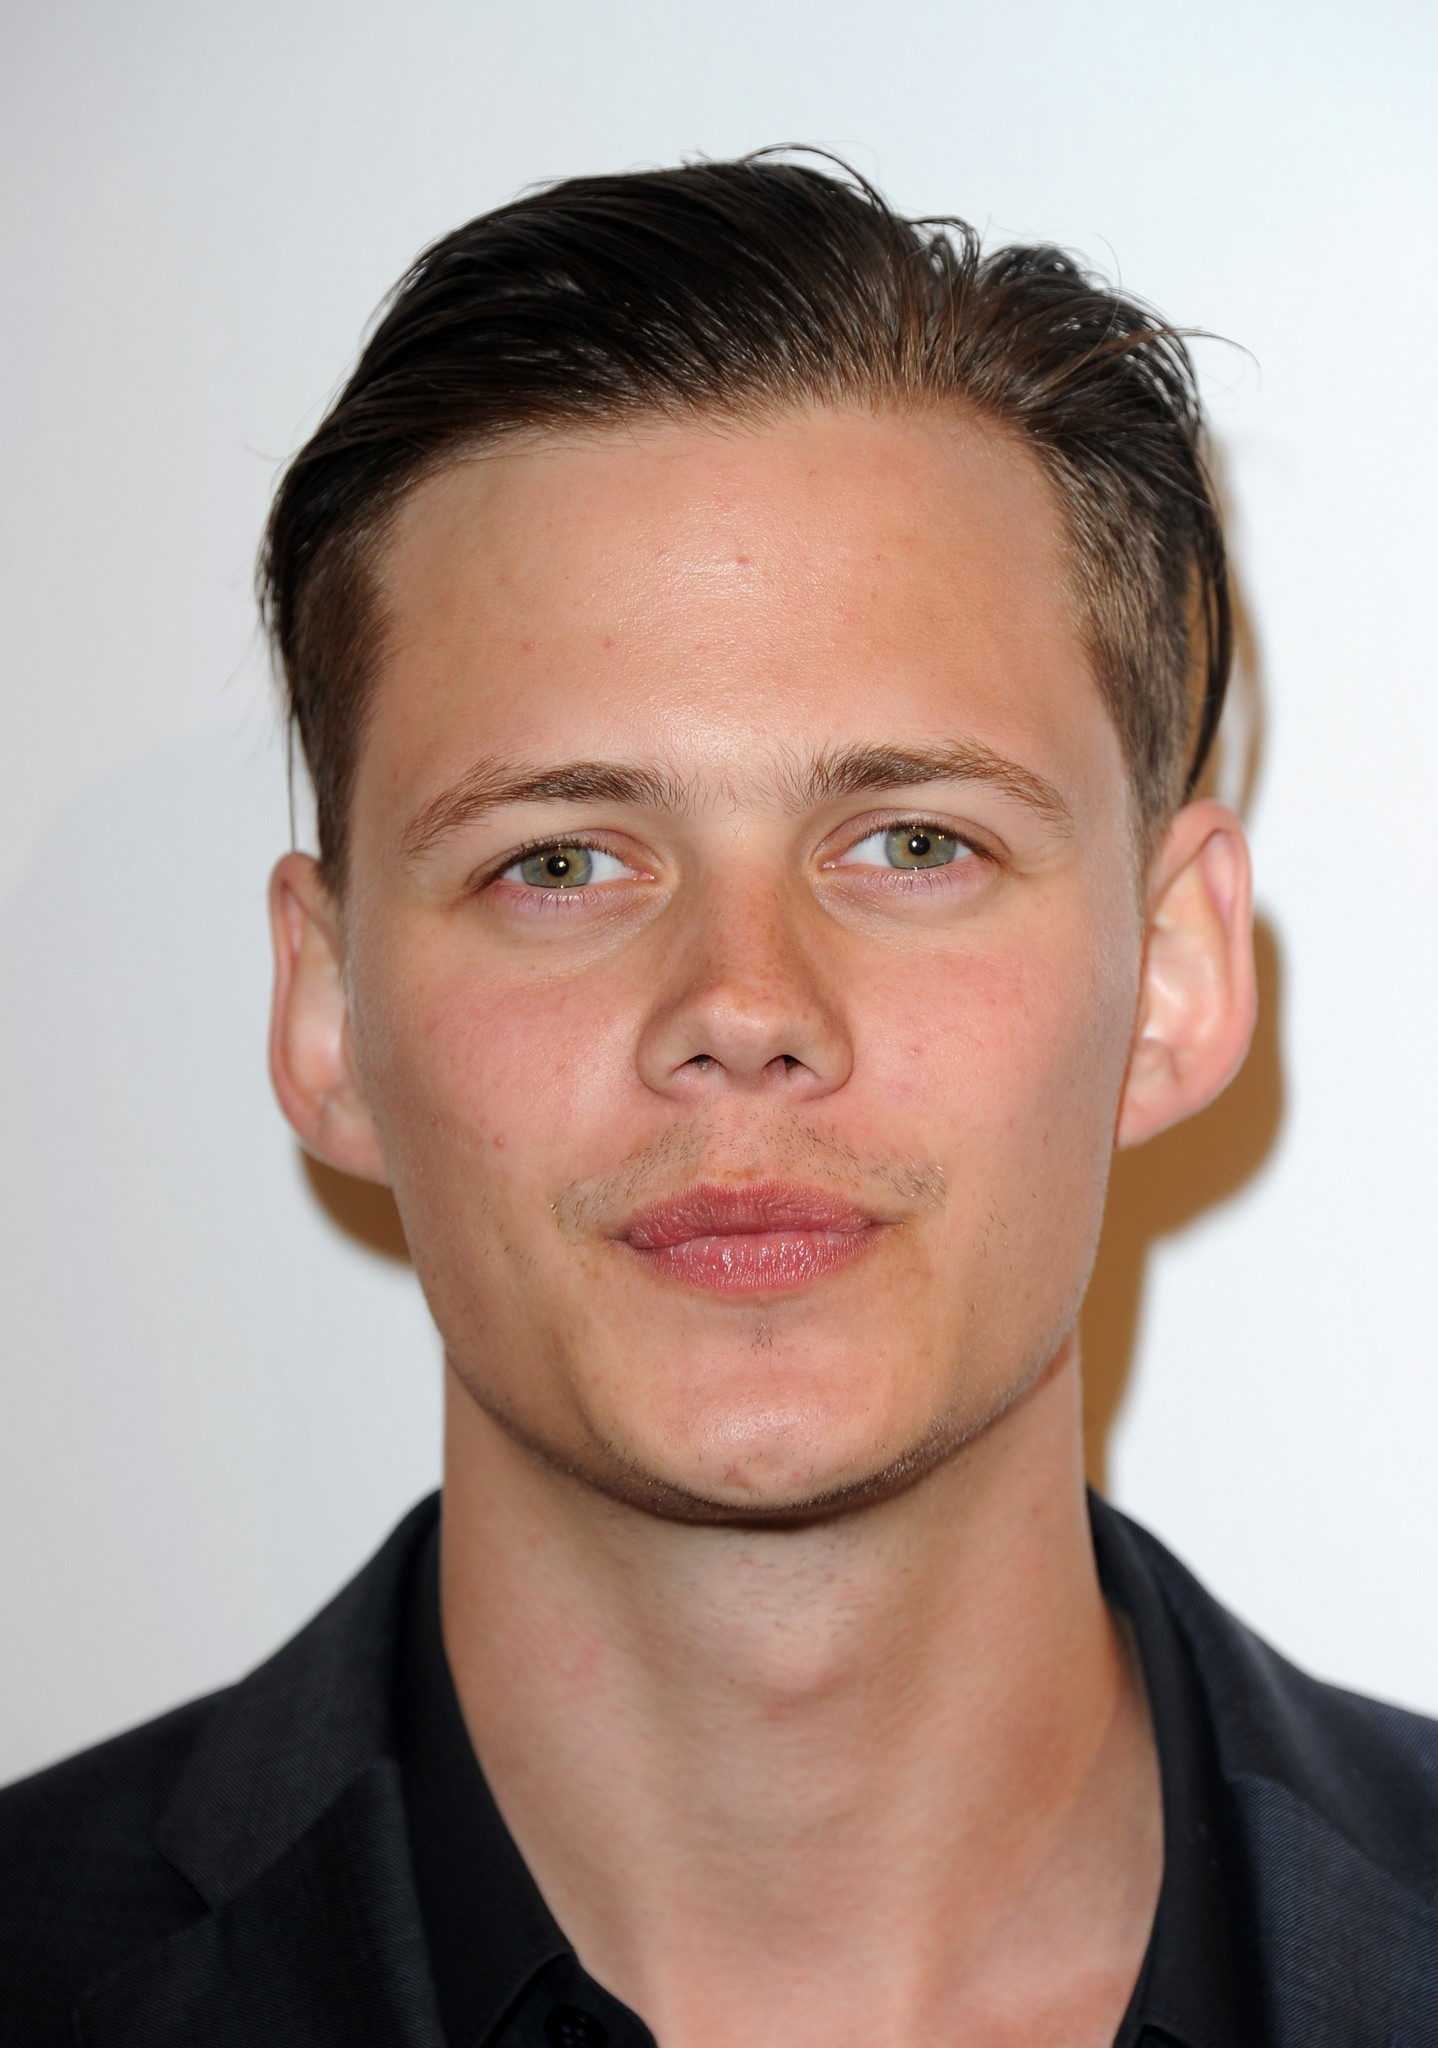 Actor Bill Skarsgard: biography, personal life, movies, interesting facts 33